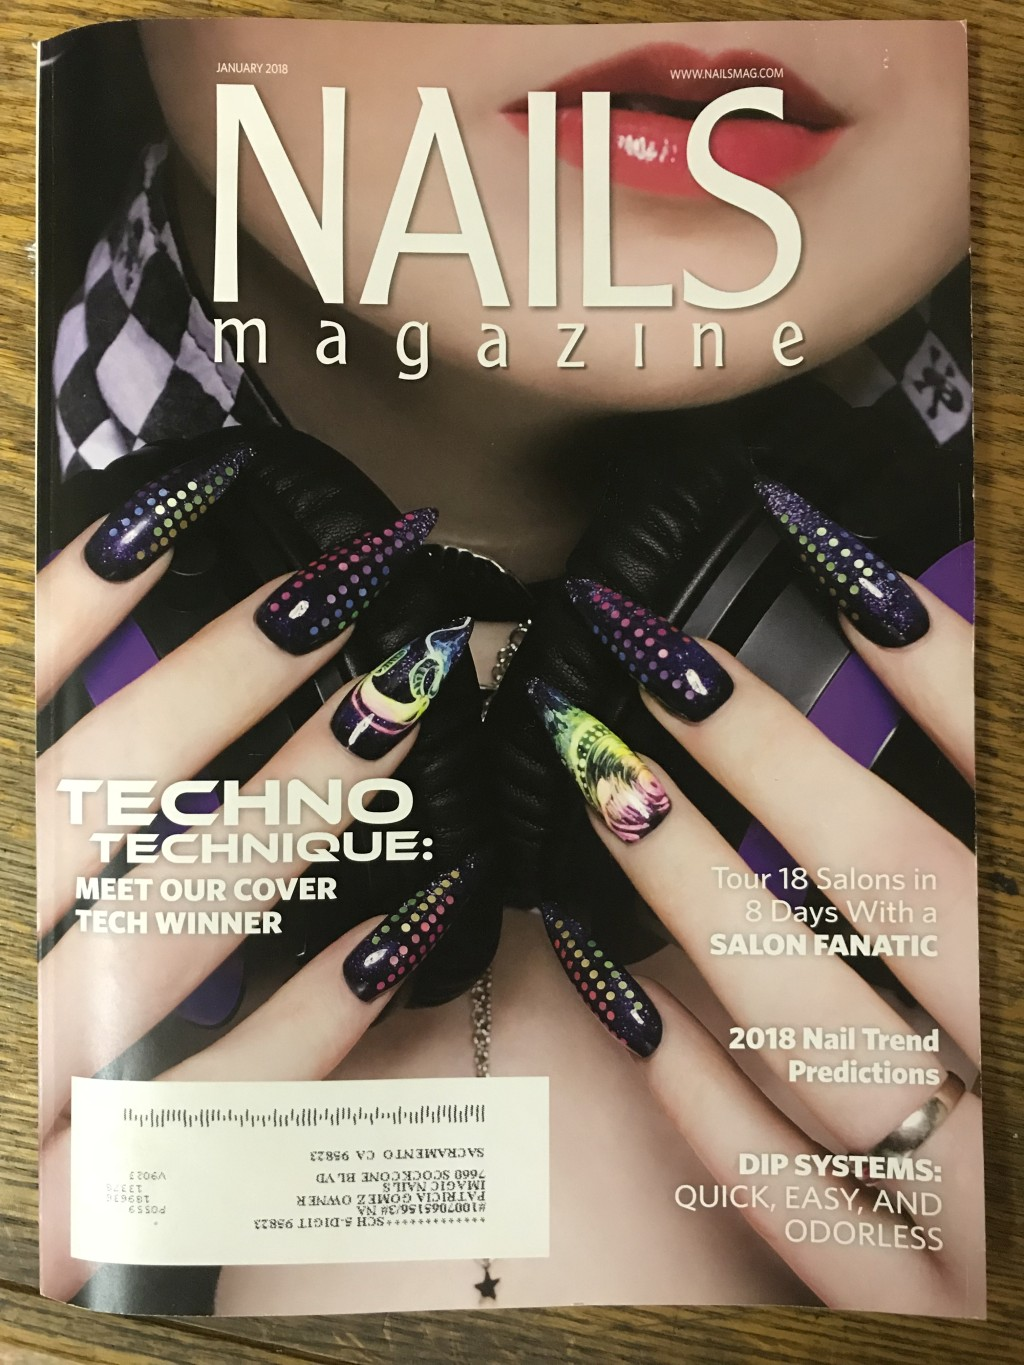 imagic-nails-in-nails-magazine-january-2018-issue